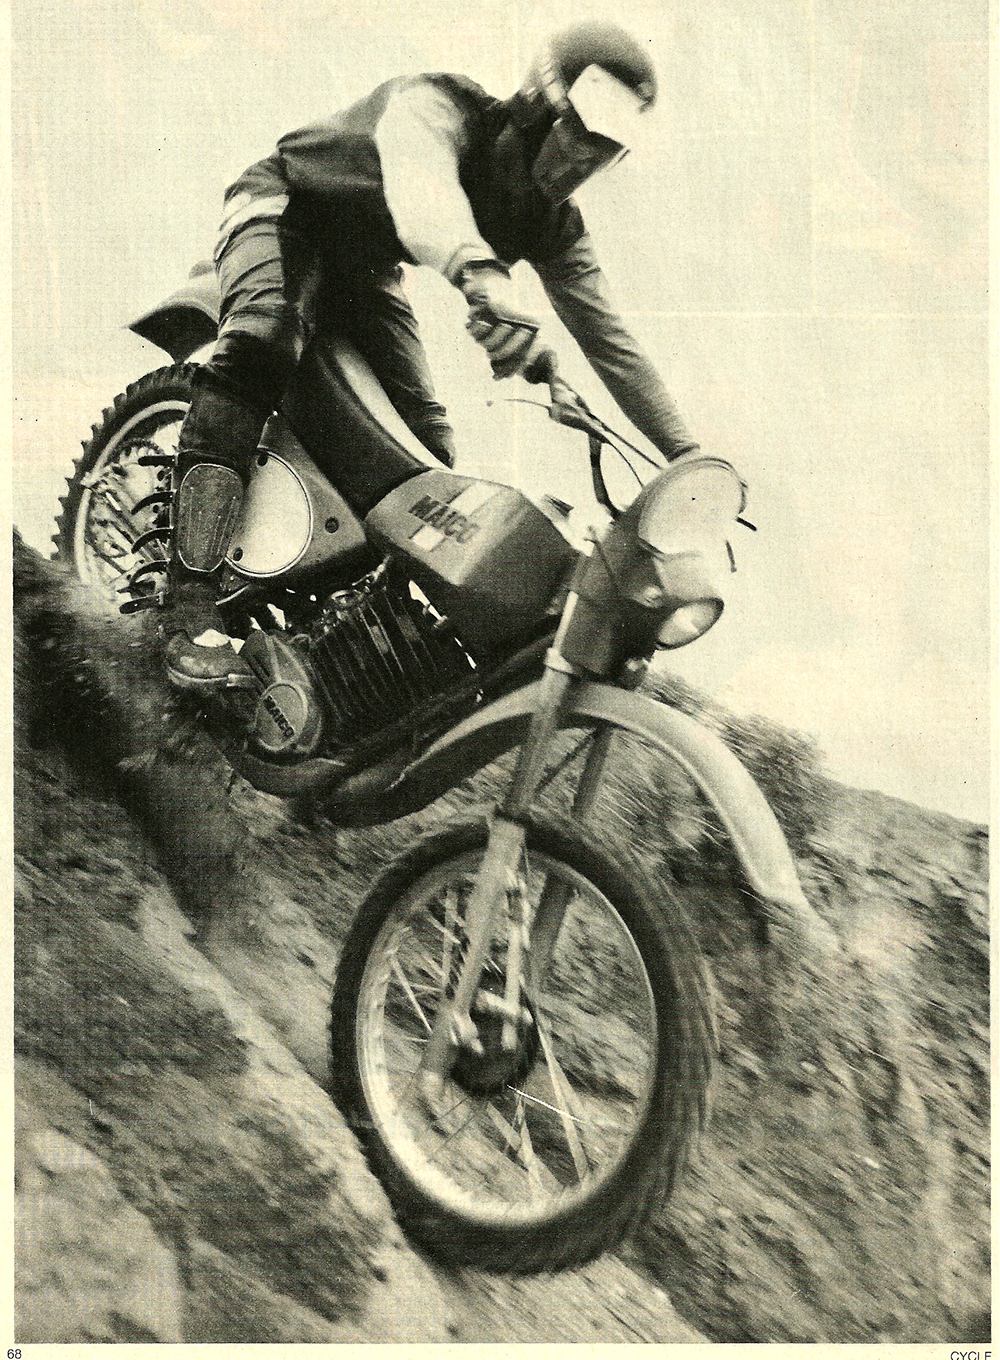 1977 Maico WR450 Cross Country XC road test 1.jpg